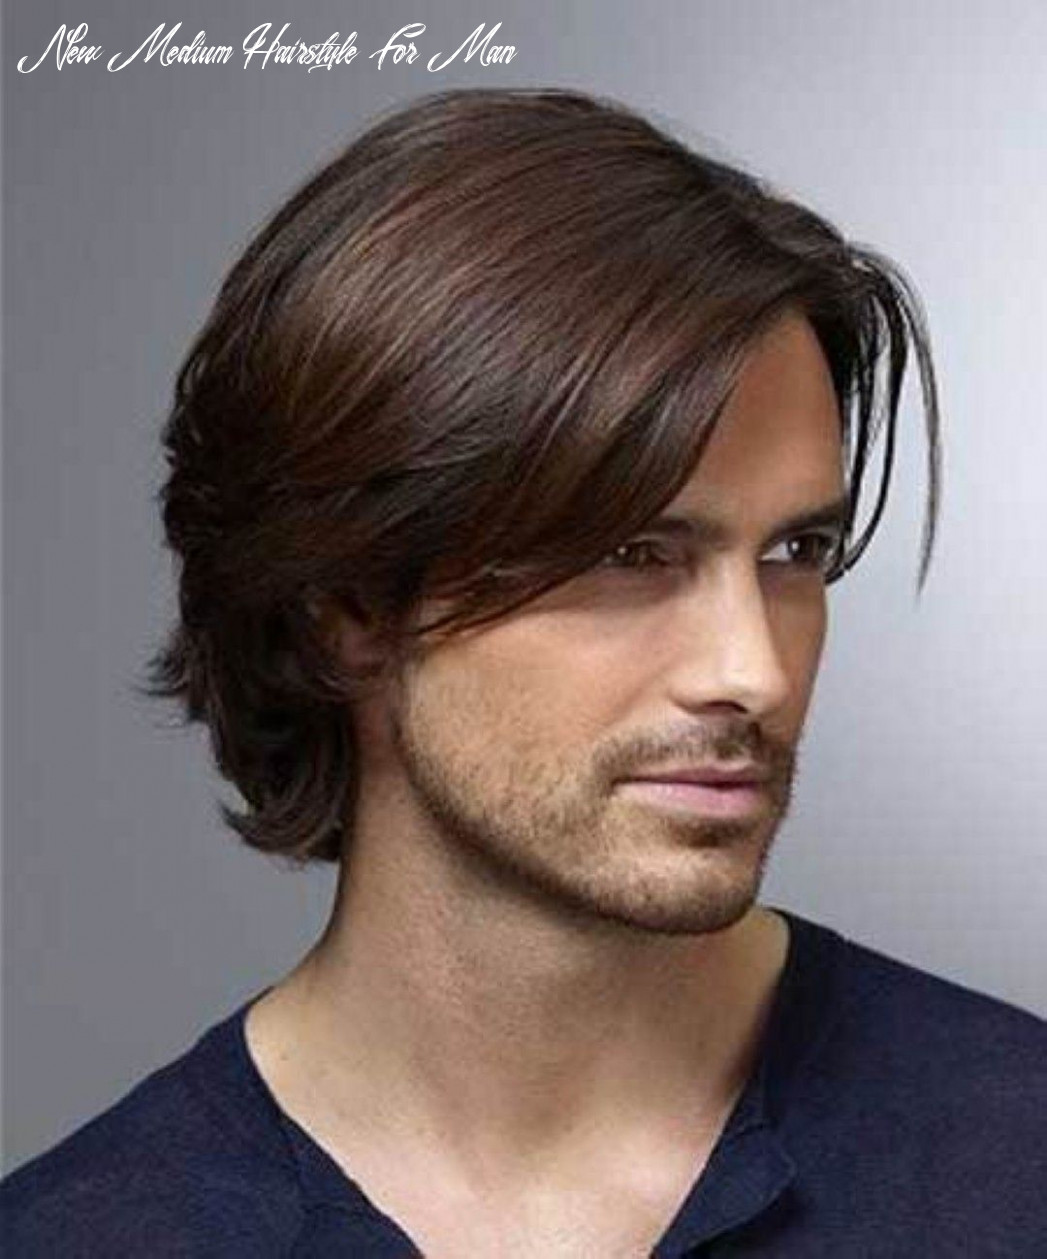 Pin on hair new medium hairstyle for man